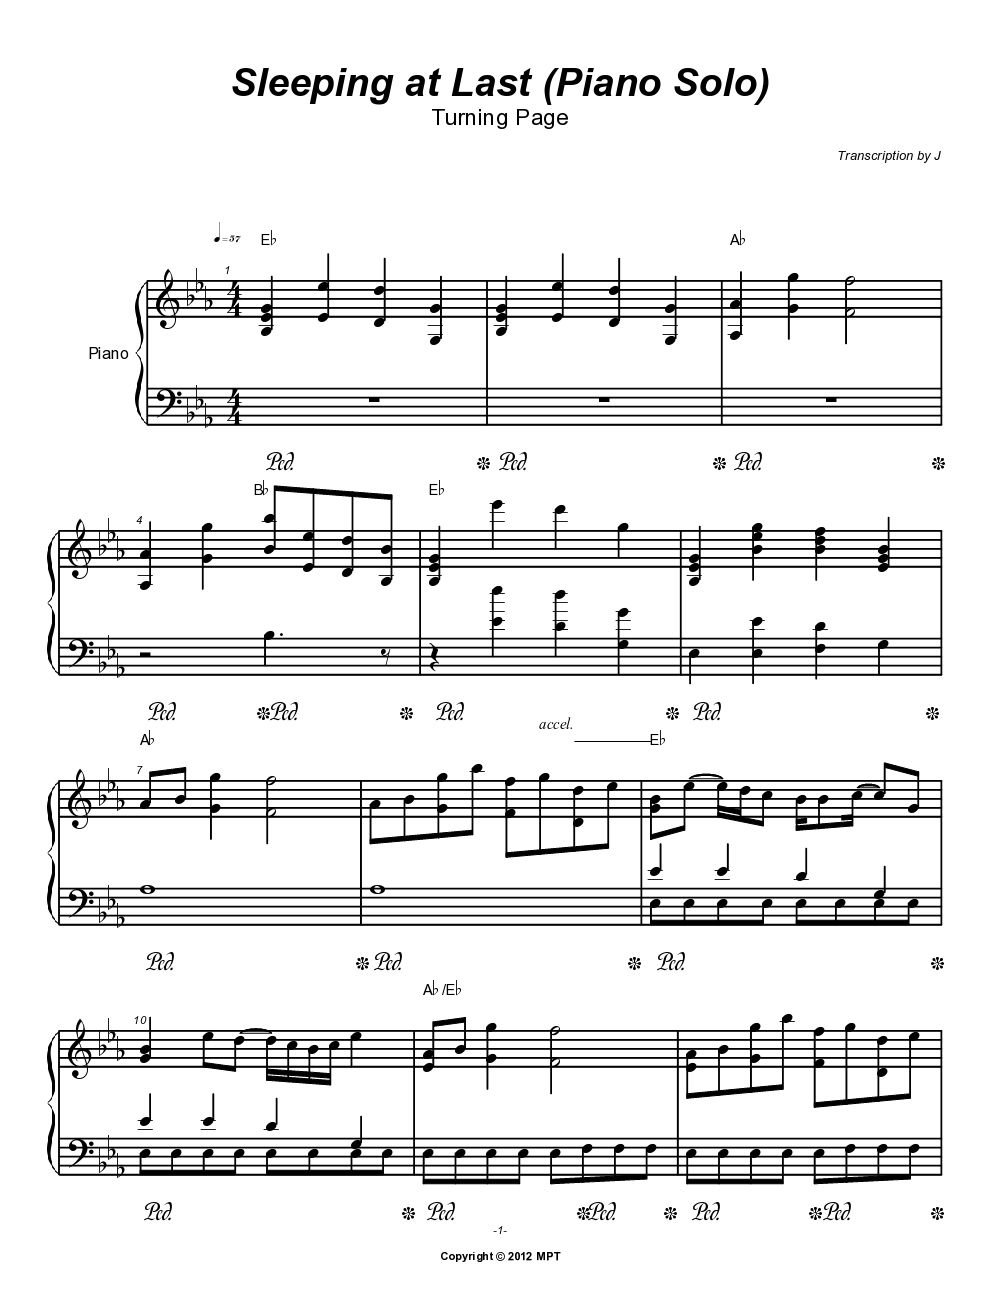 Sleeping At Last Piano Solo Turning Page